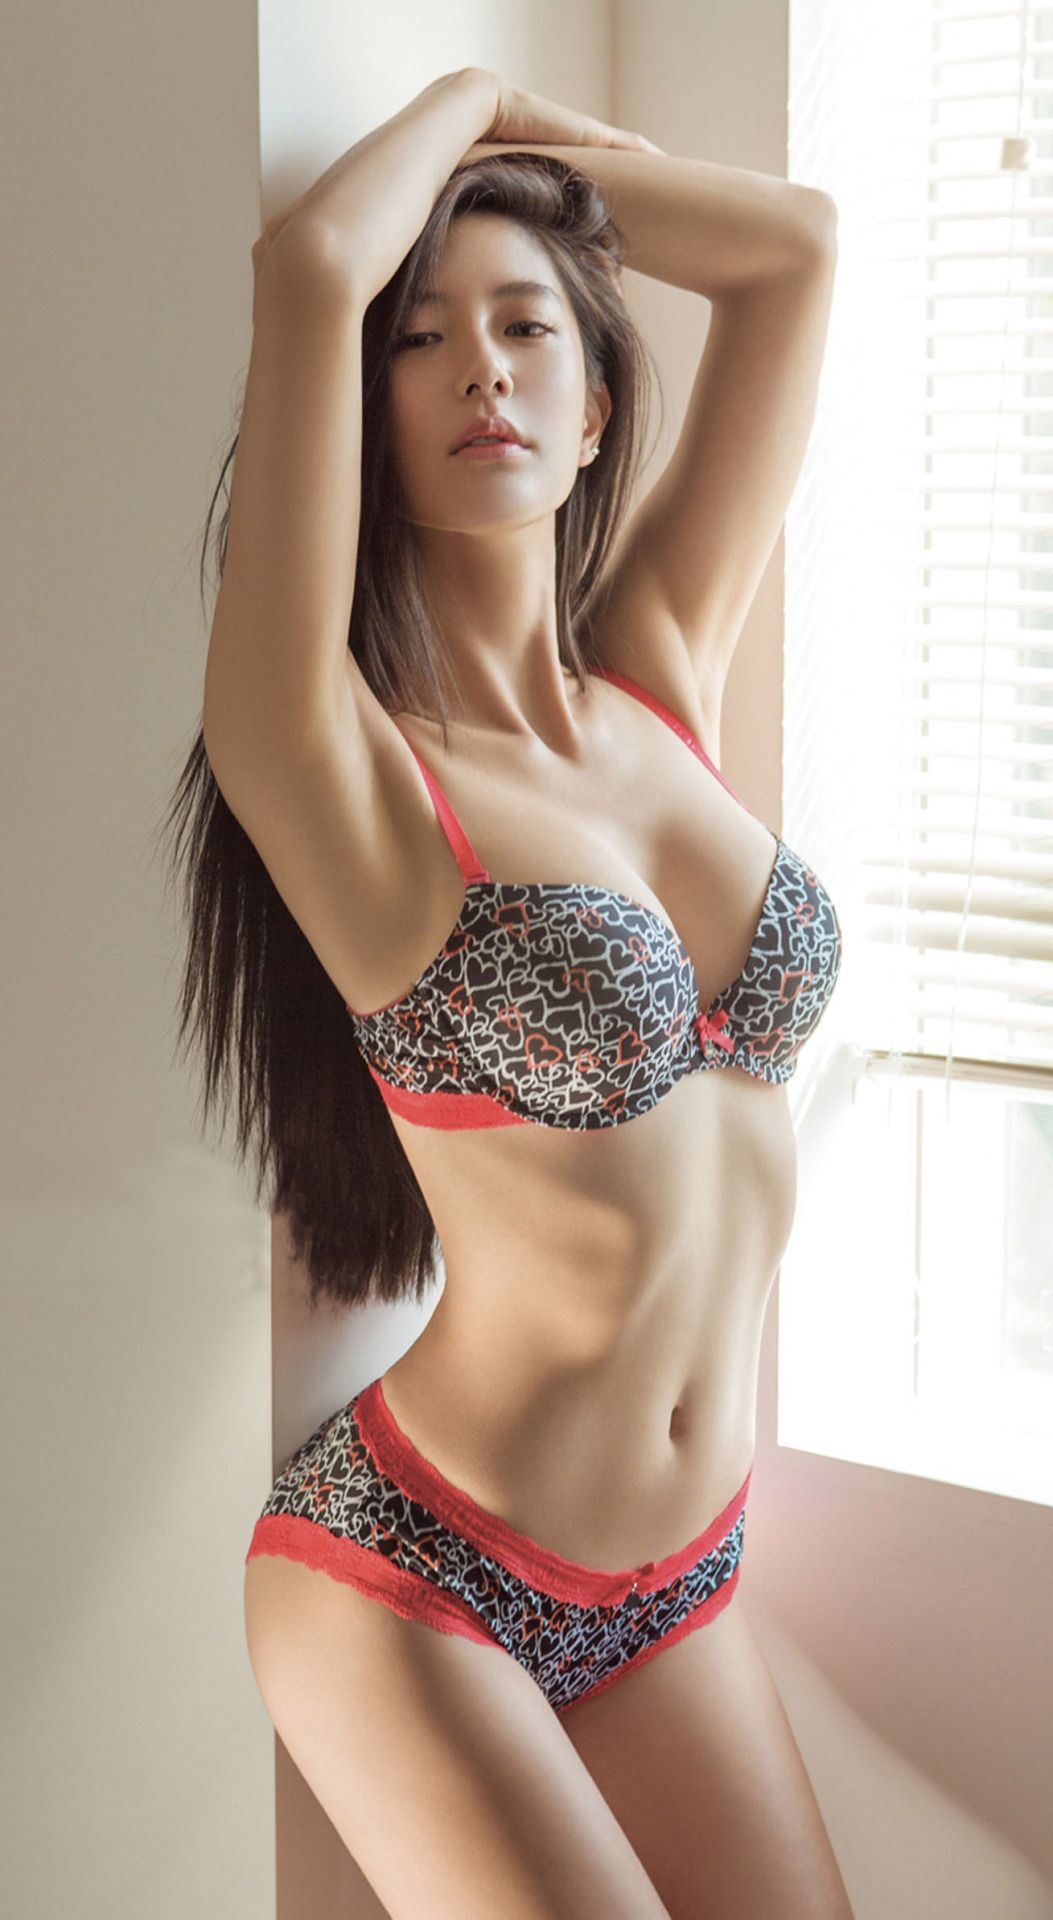 Asian Girls In Panties Tumblr